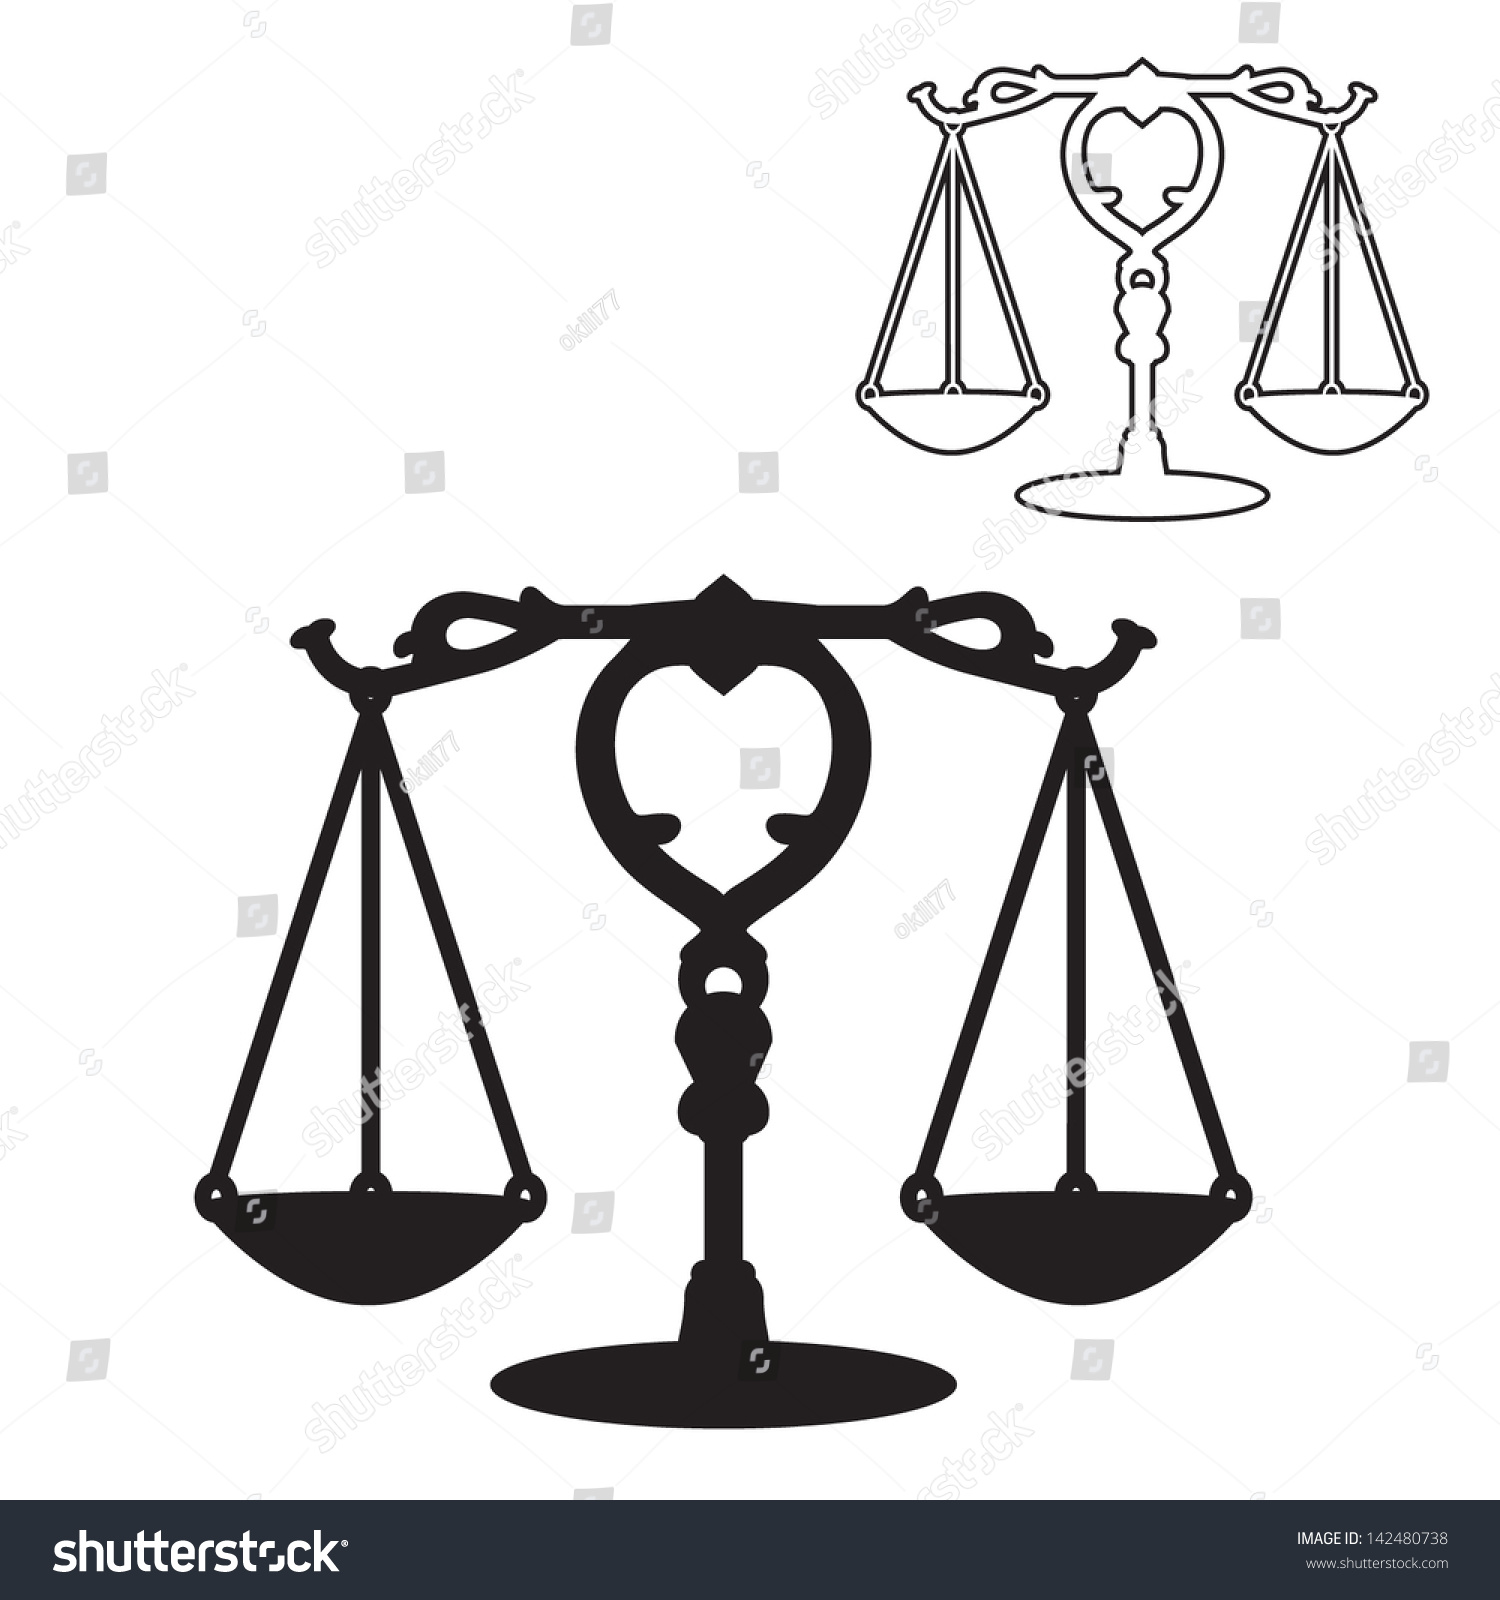 Scales justice symbol silhouette outline vector stock vector scales of justice symbol silhouette and outline vector biocorpaavc Choice Image